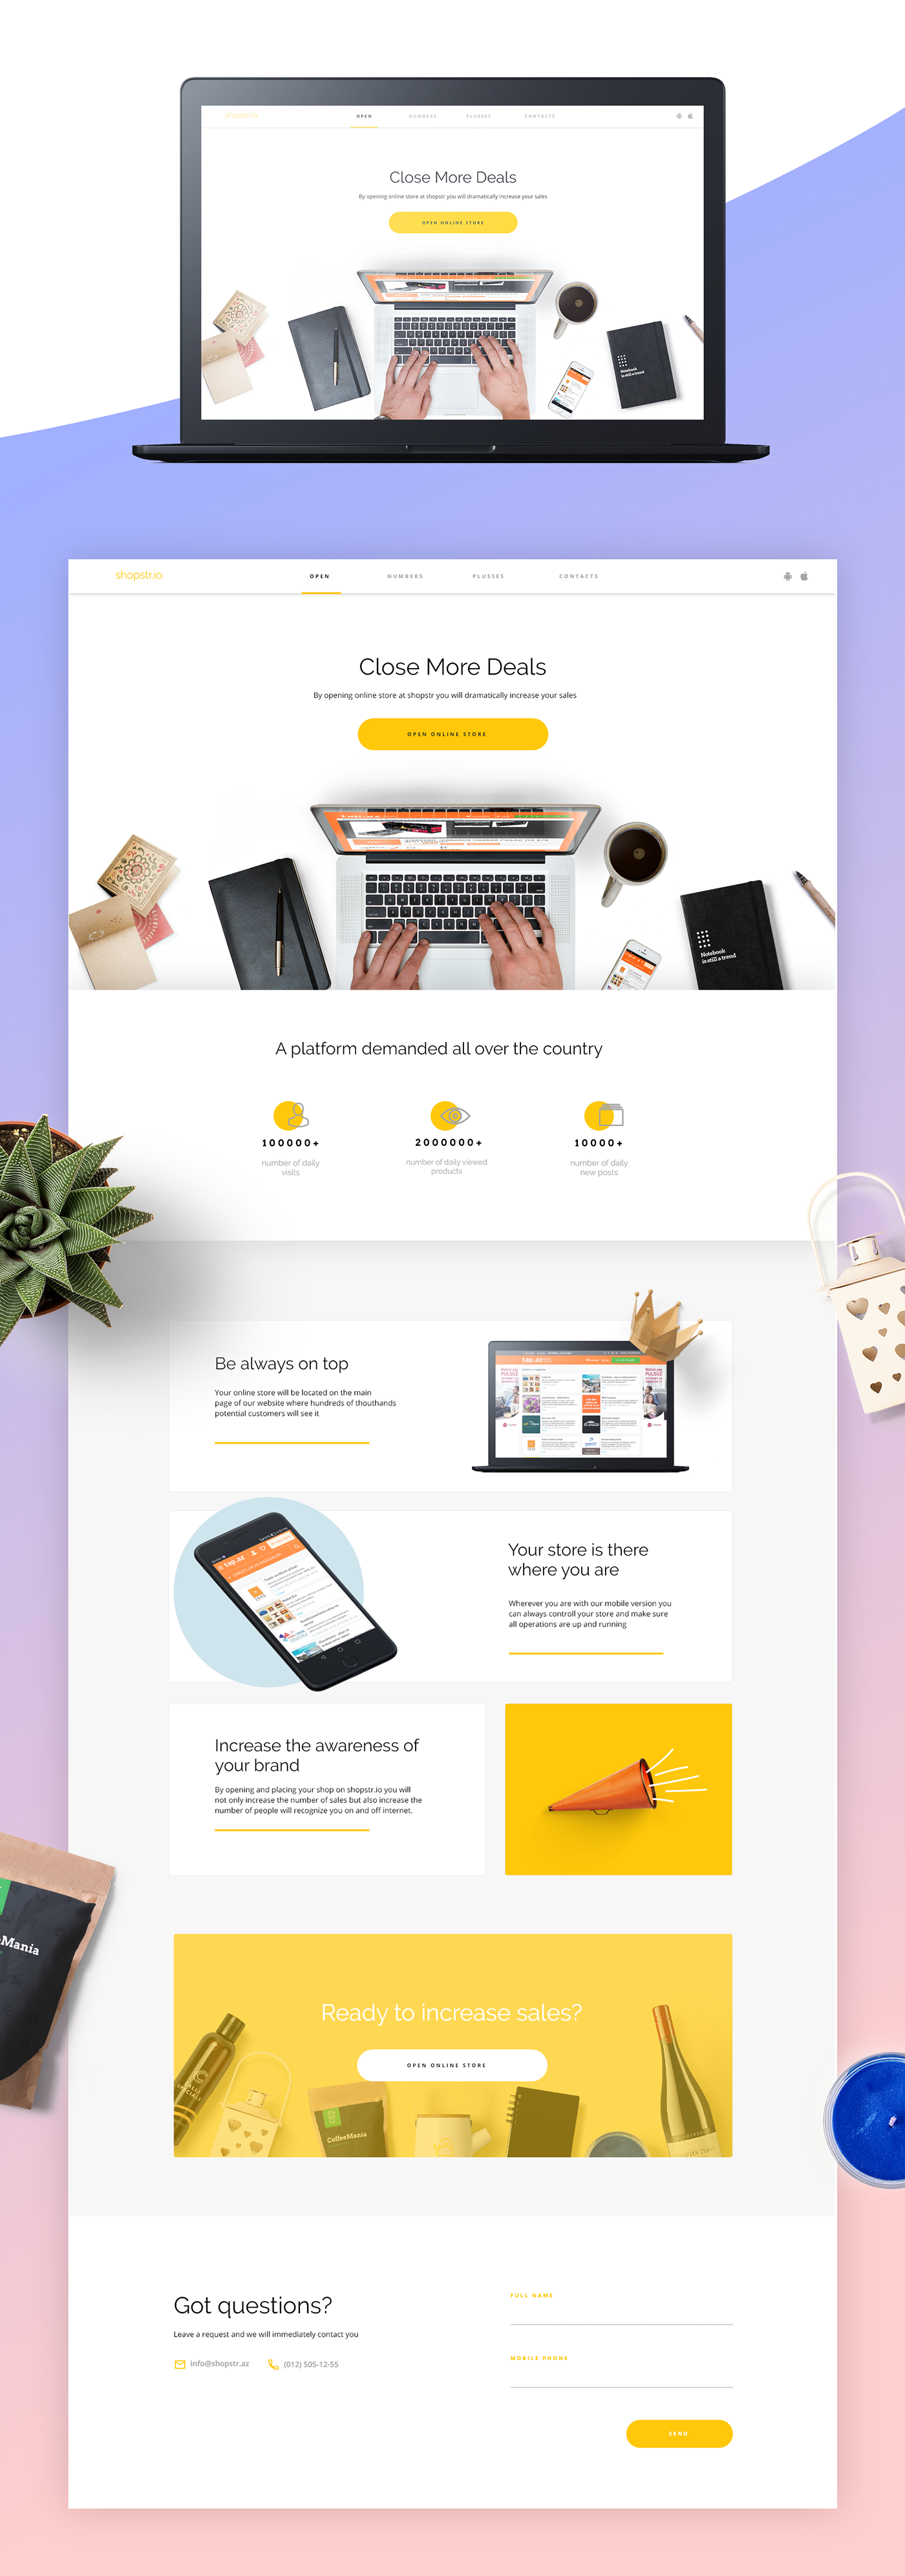 Online Store Web Template XD | UI Kits, Web & App Templates